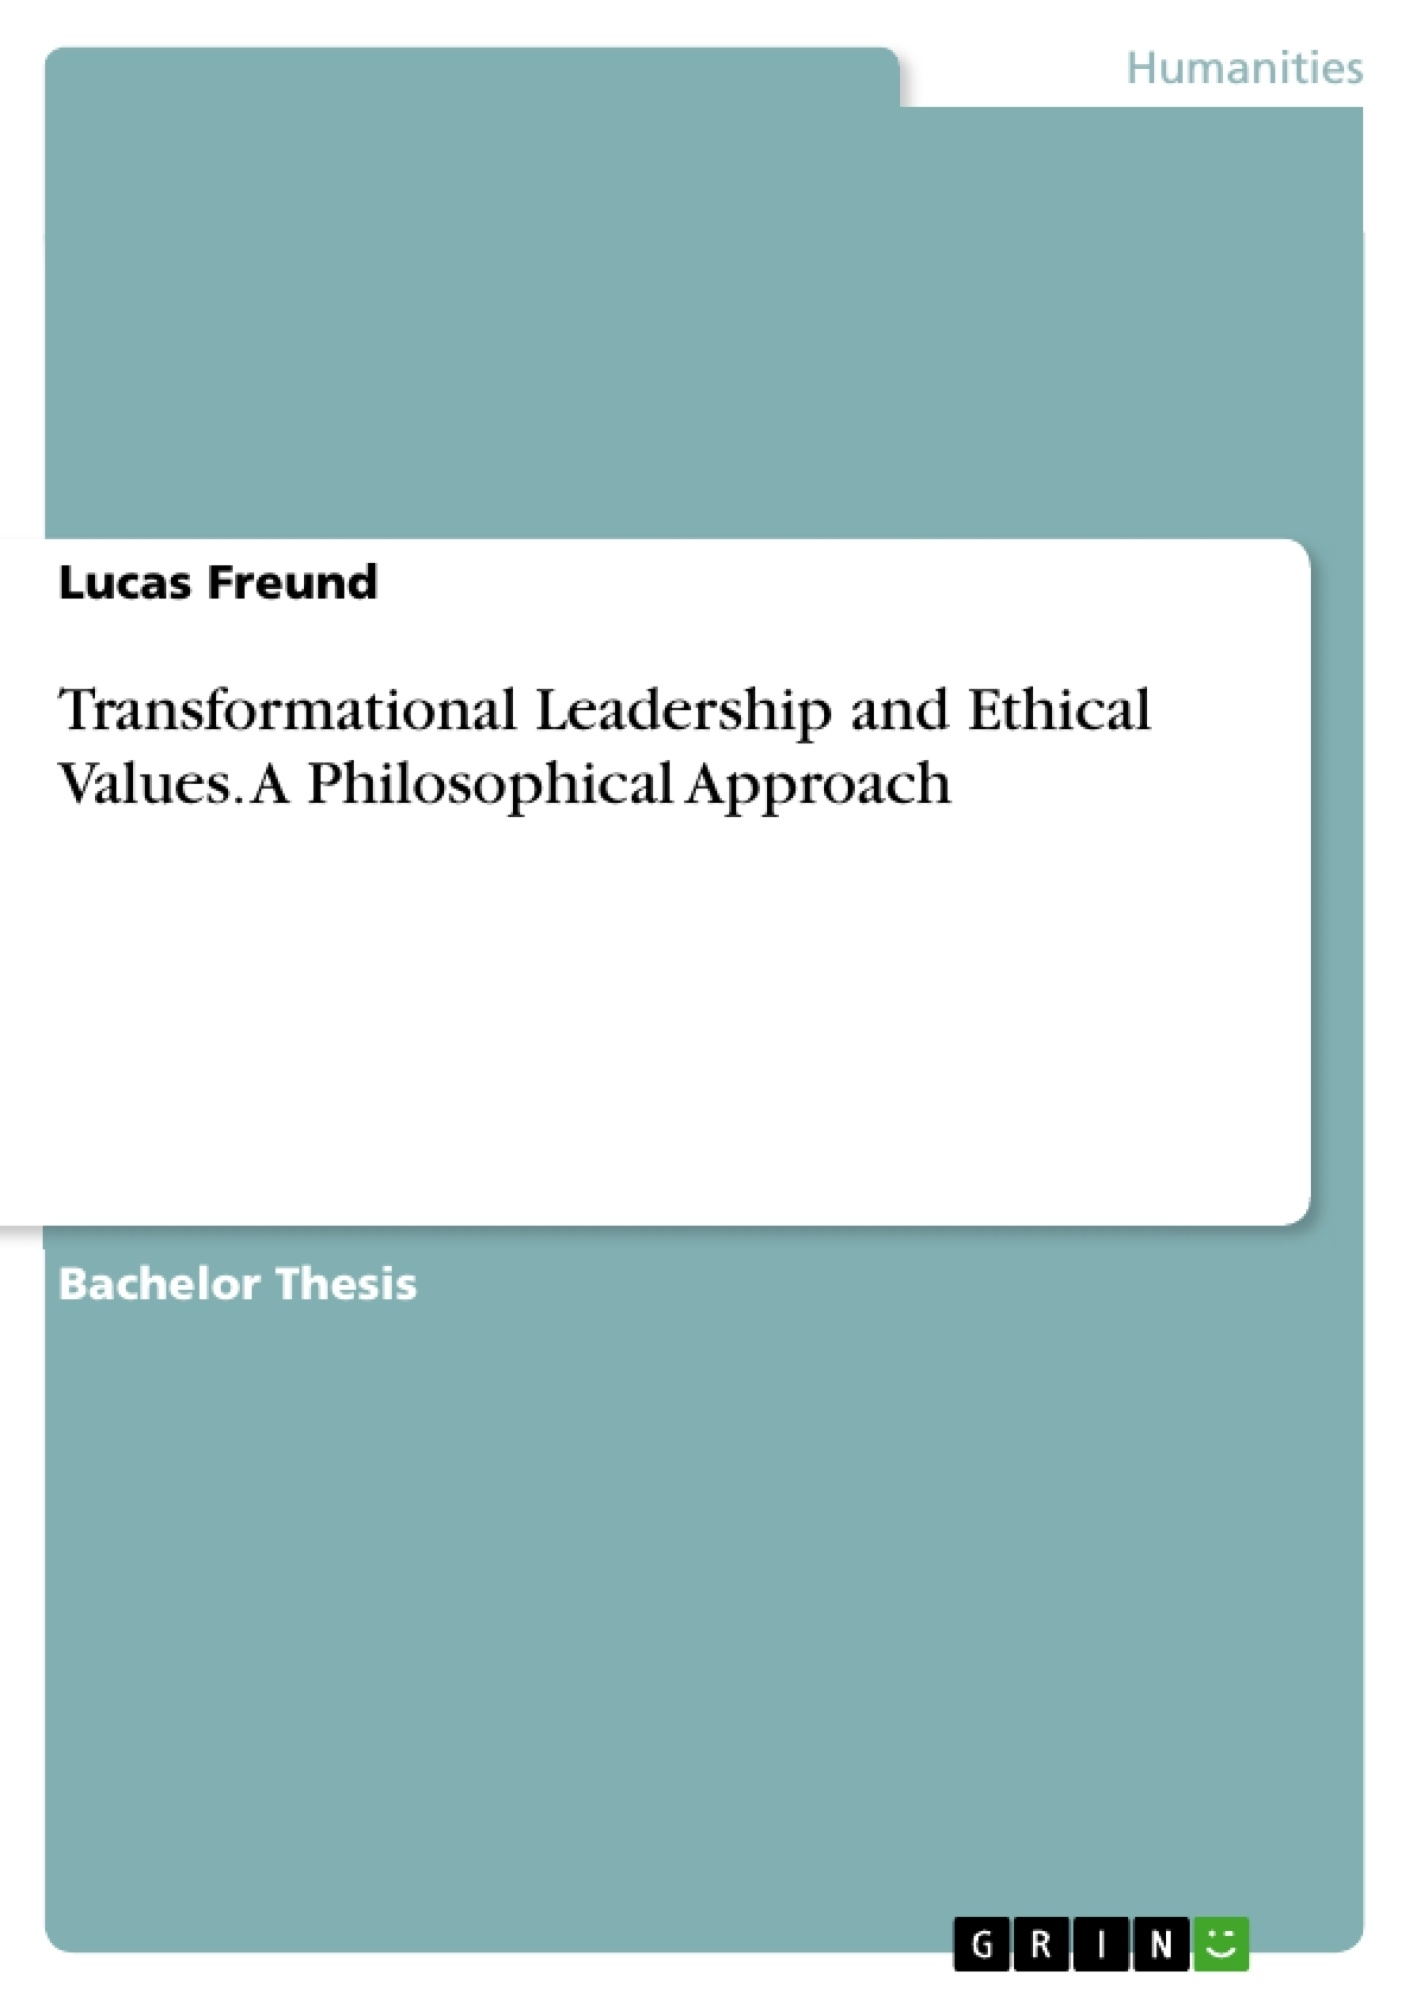 Title: Transformational Leadership and Ethical Values. A Philosophical Approach